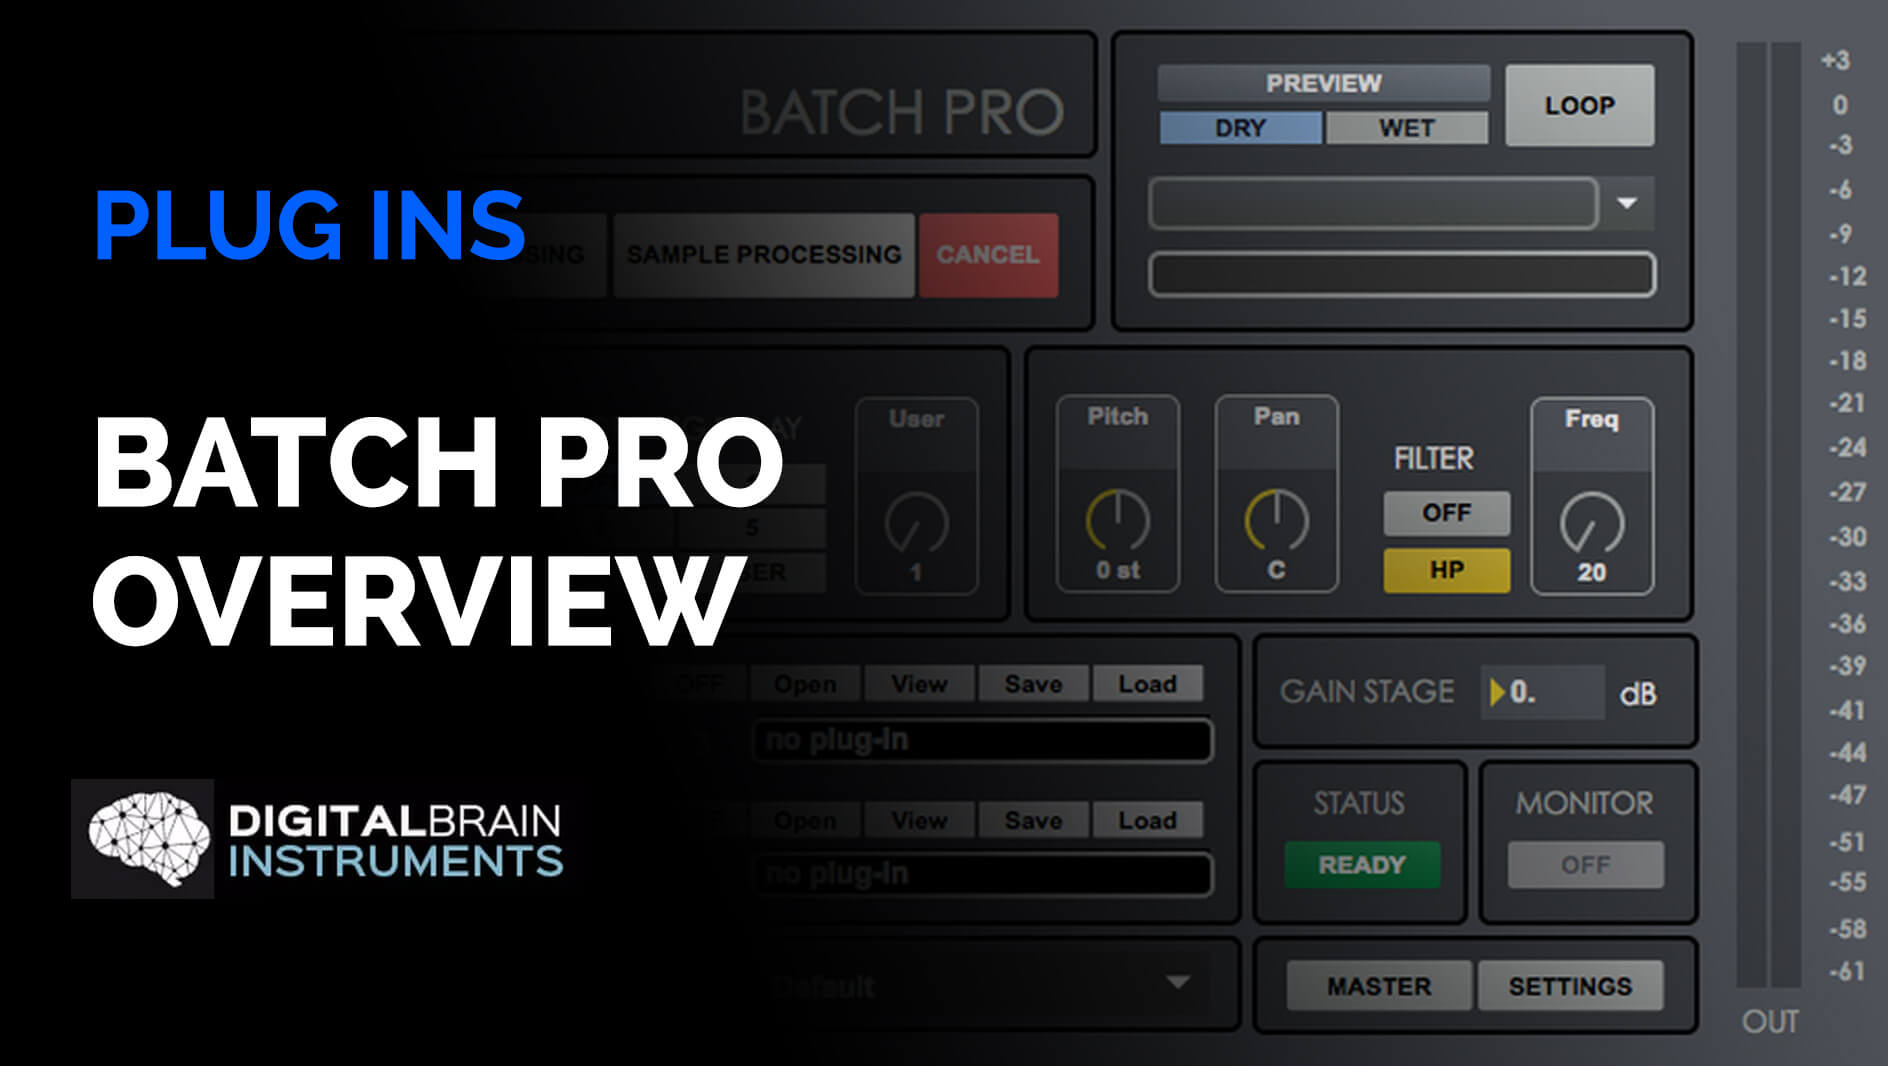 Video related to Batch Pro